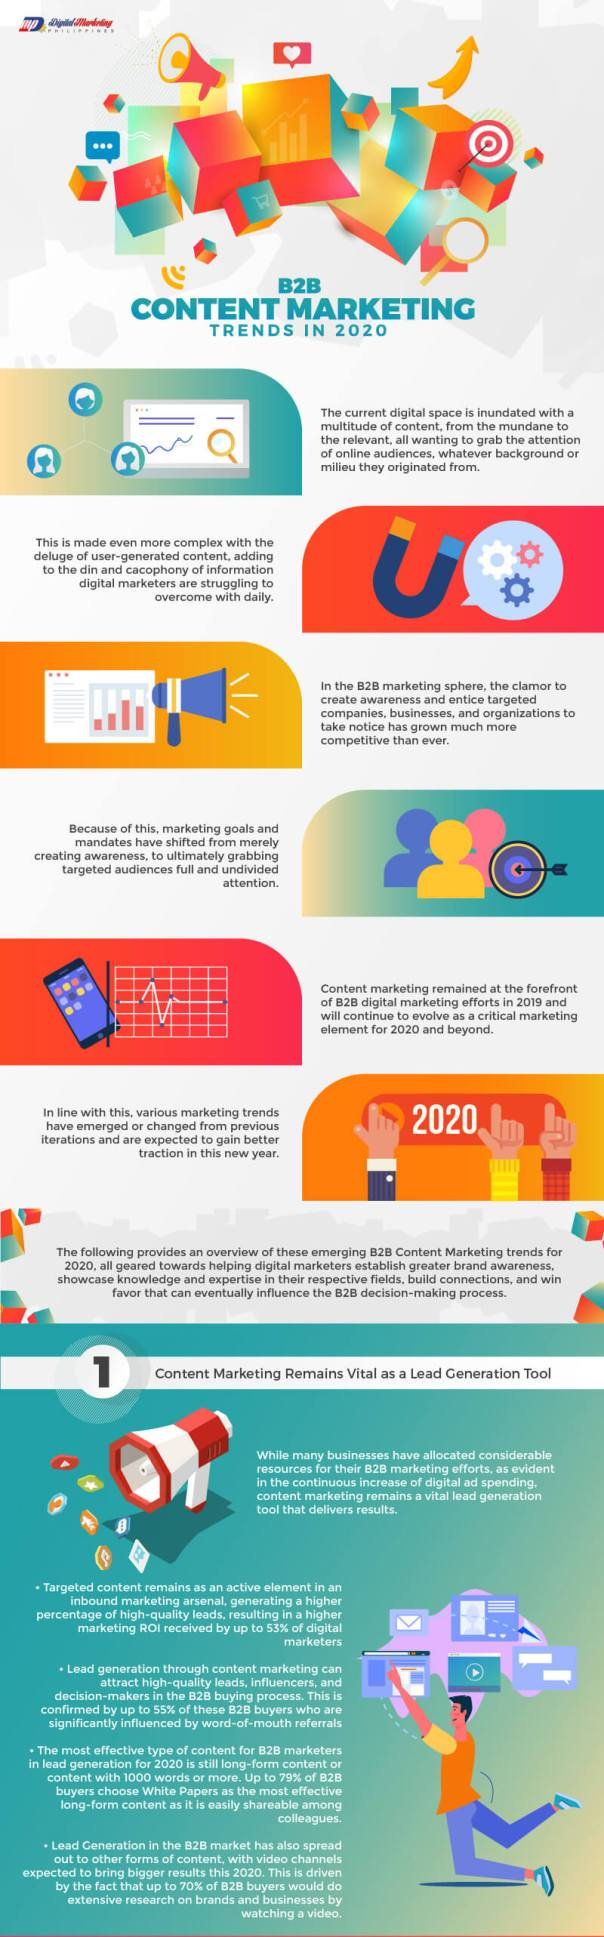 Infographic B2B Content Marketing Trends in 2020 1